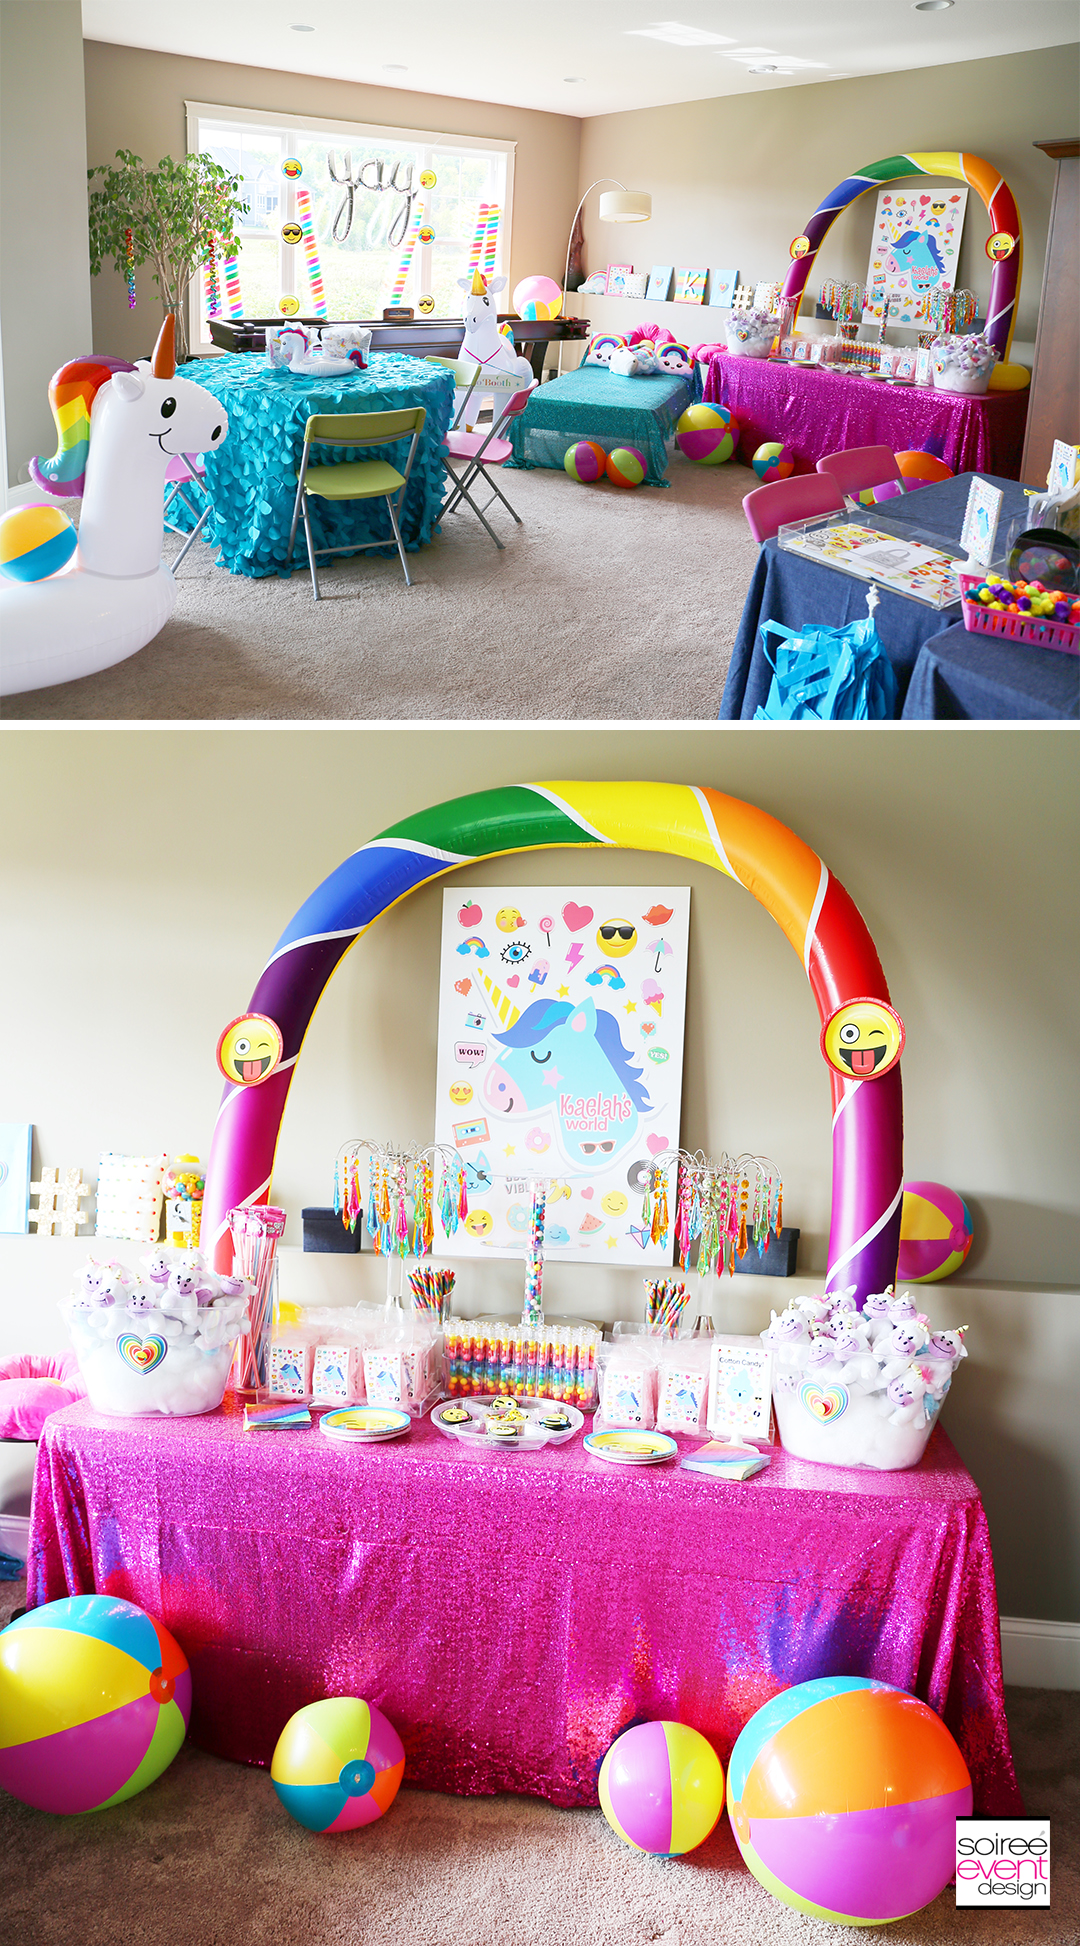 Rainbow Unicorn Emoji Party Ideas - Decorations